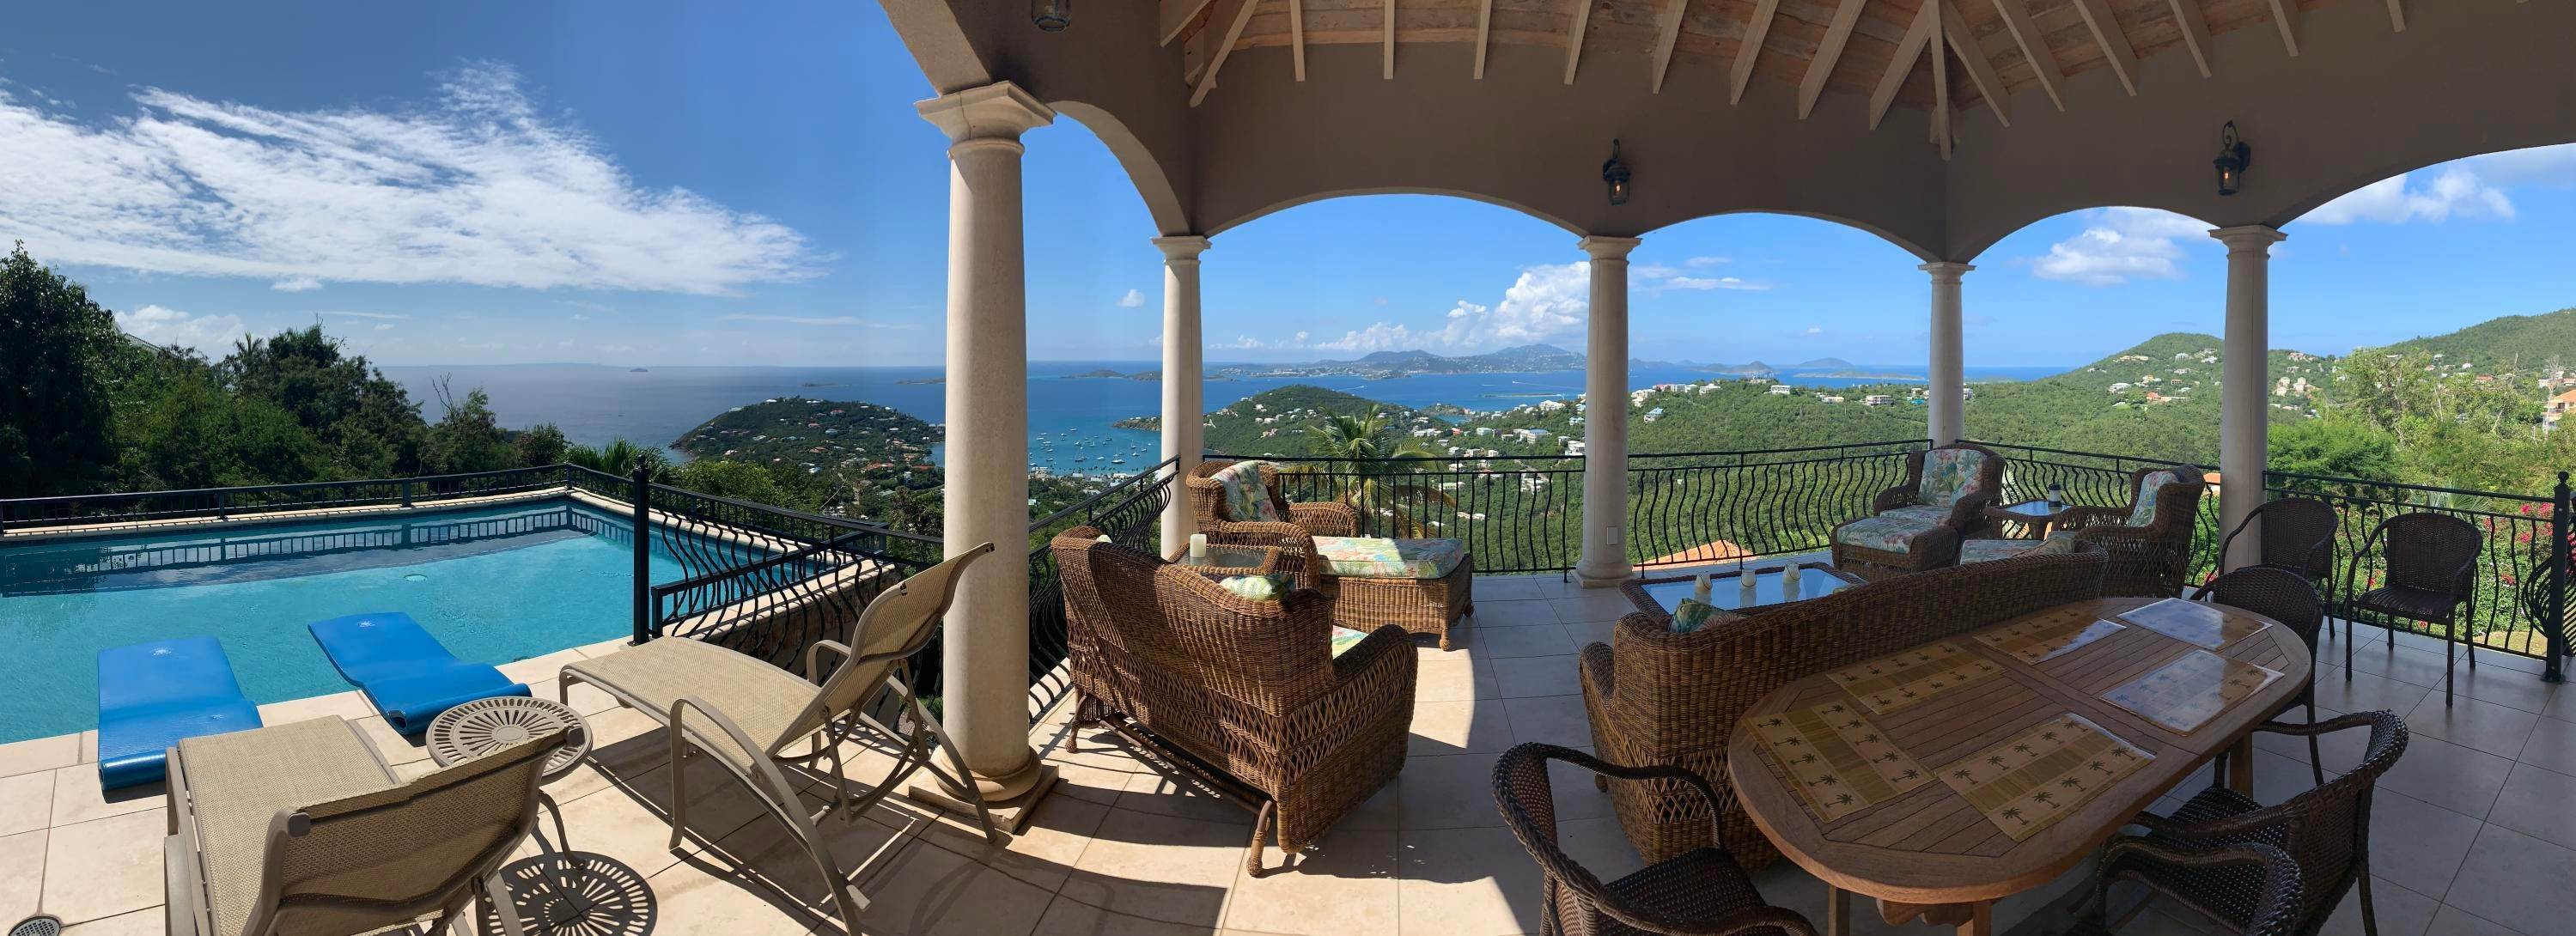 3. Single Family Home for Sale at 3B-53 Sans Soucci & Guinea Gut Cruz Bay St John, Virgin Islands,00830 United States Virgin Islands